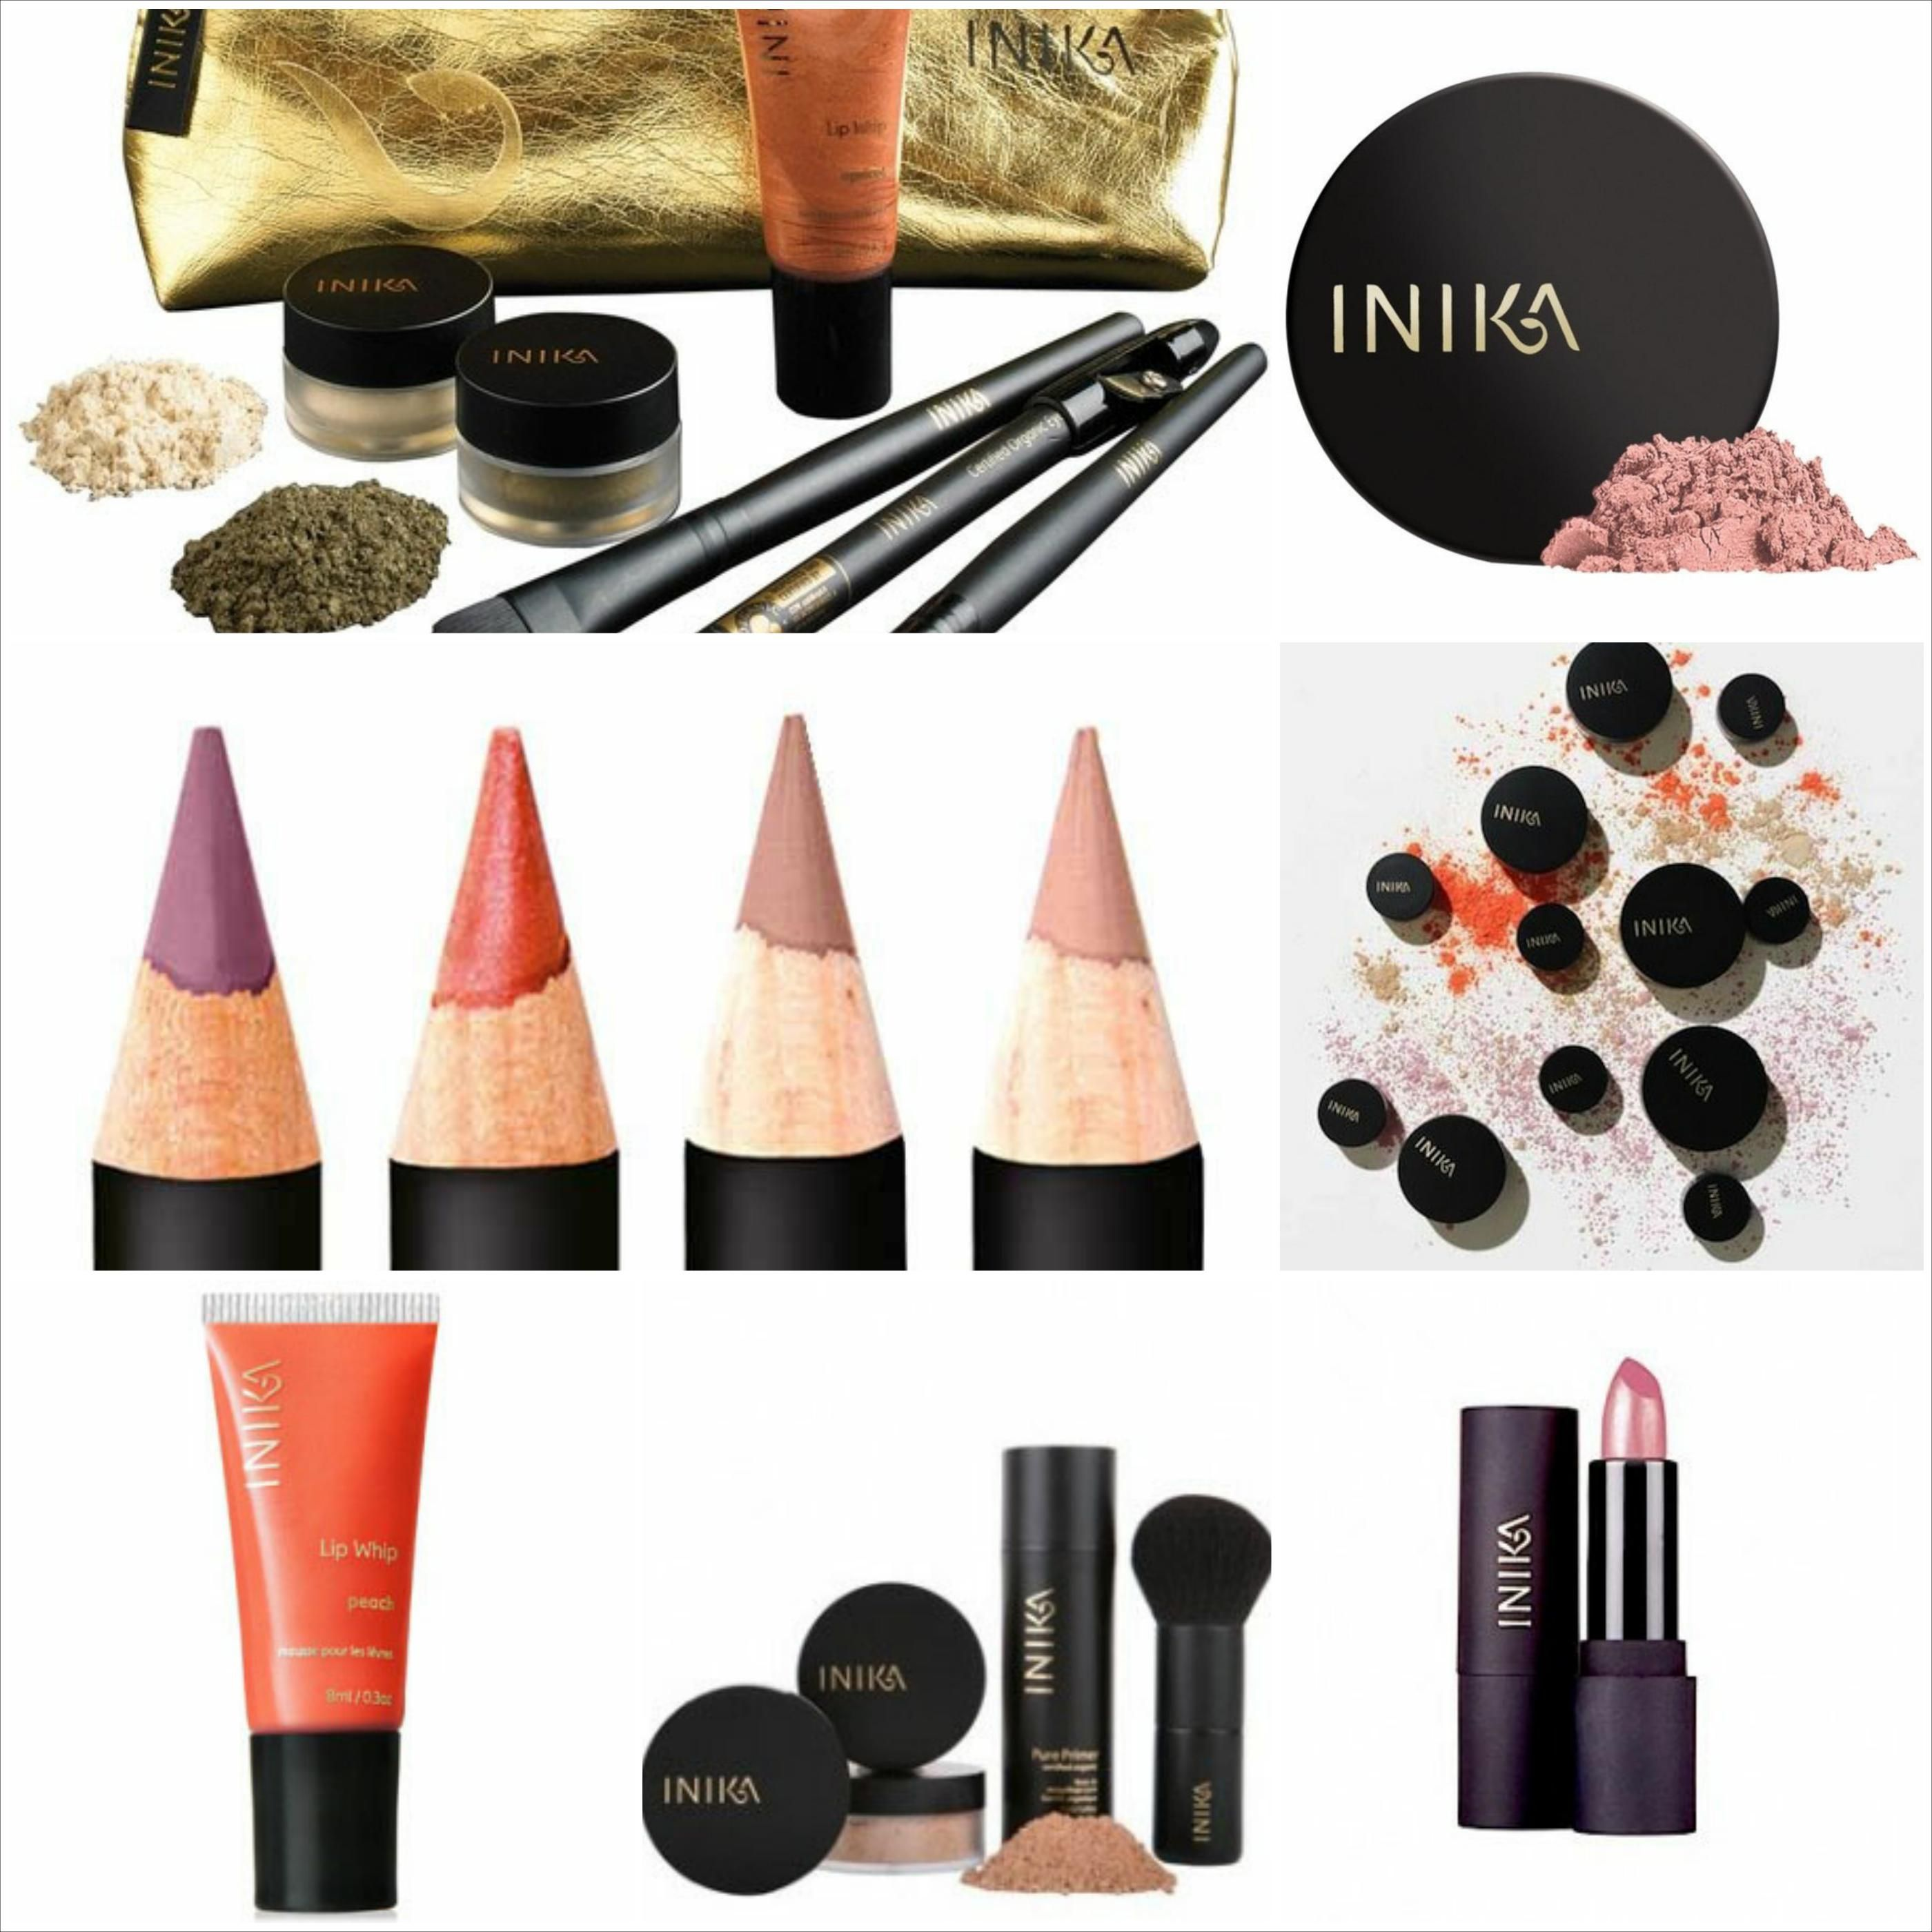 Inika makeup. Vegan. Natural organic makeup, Vegan